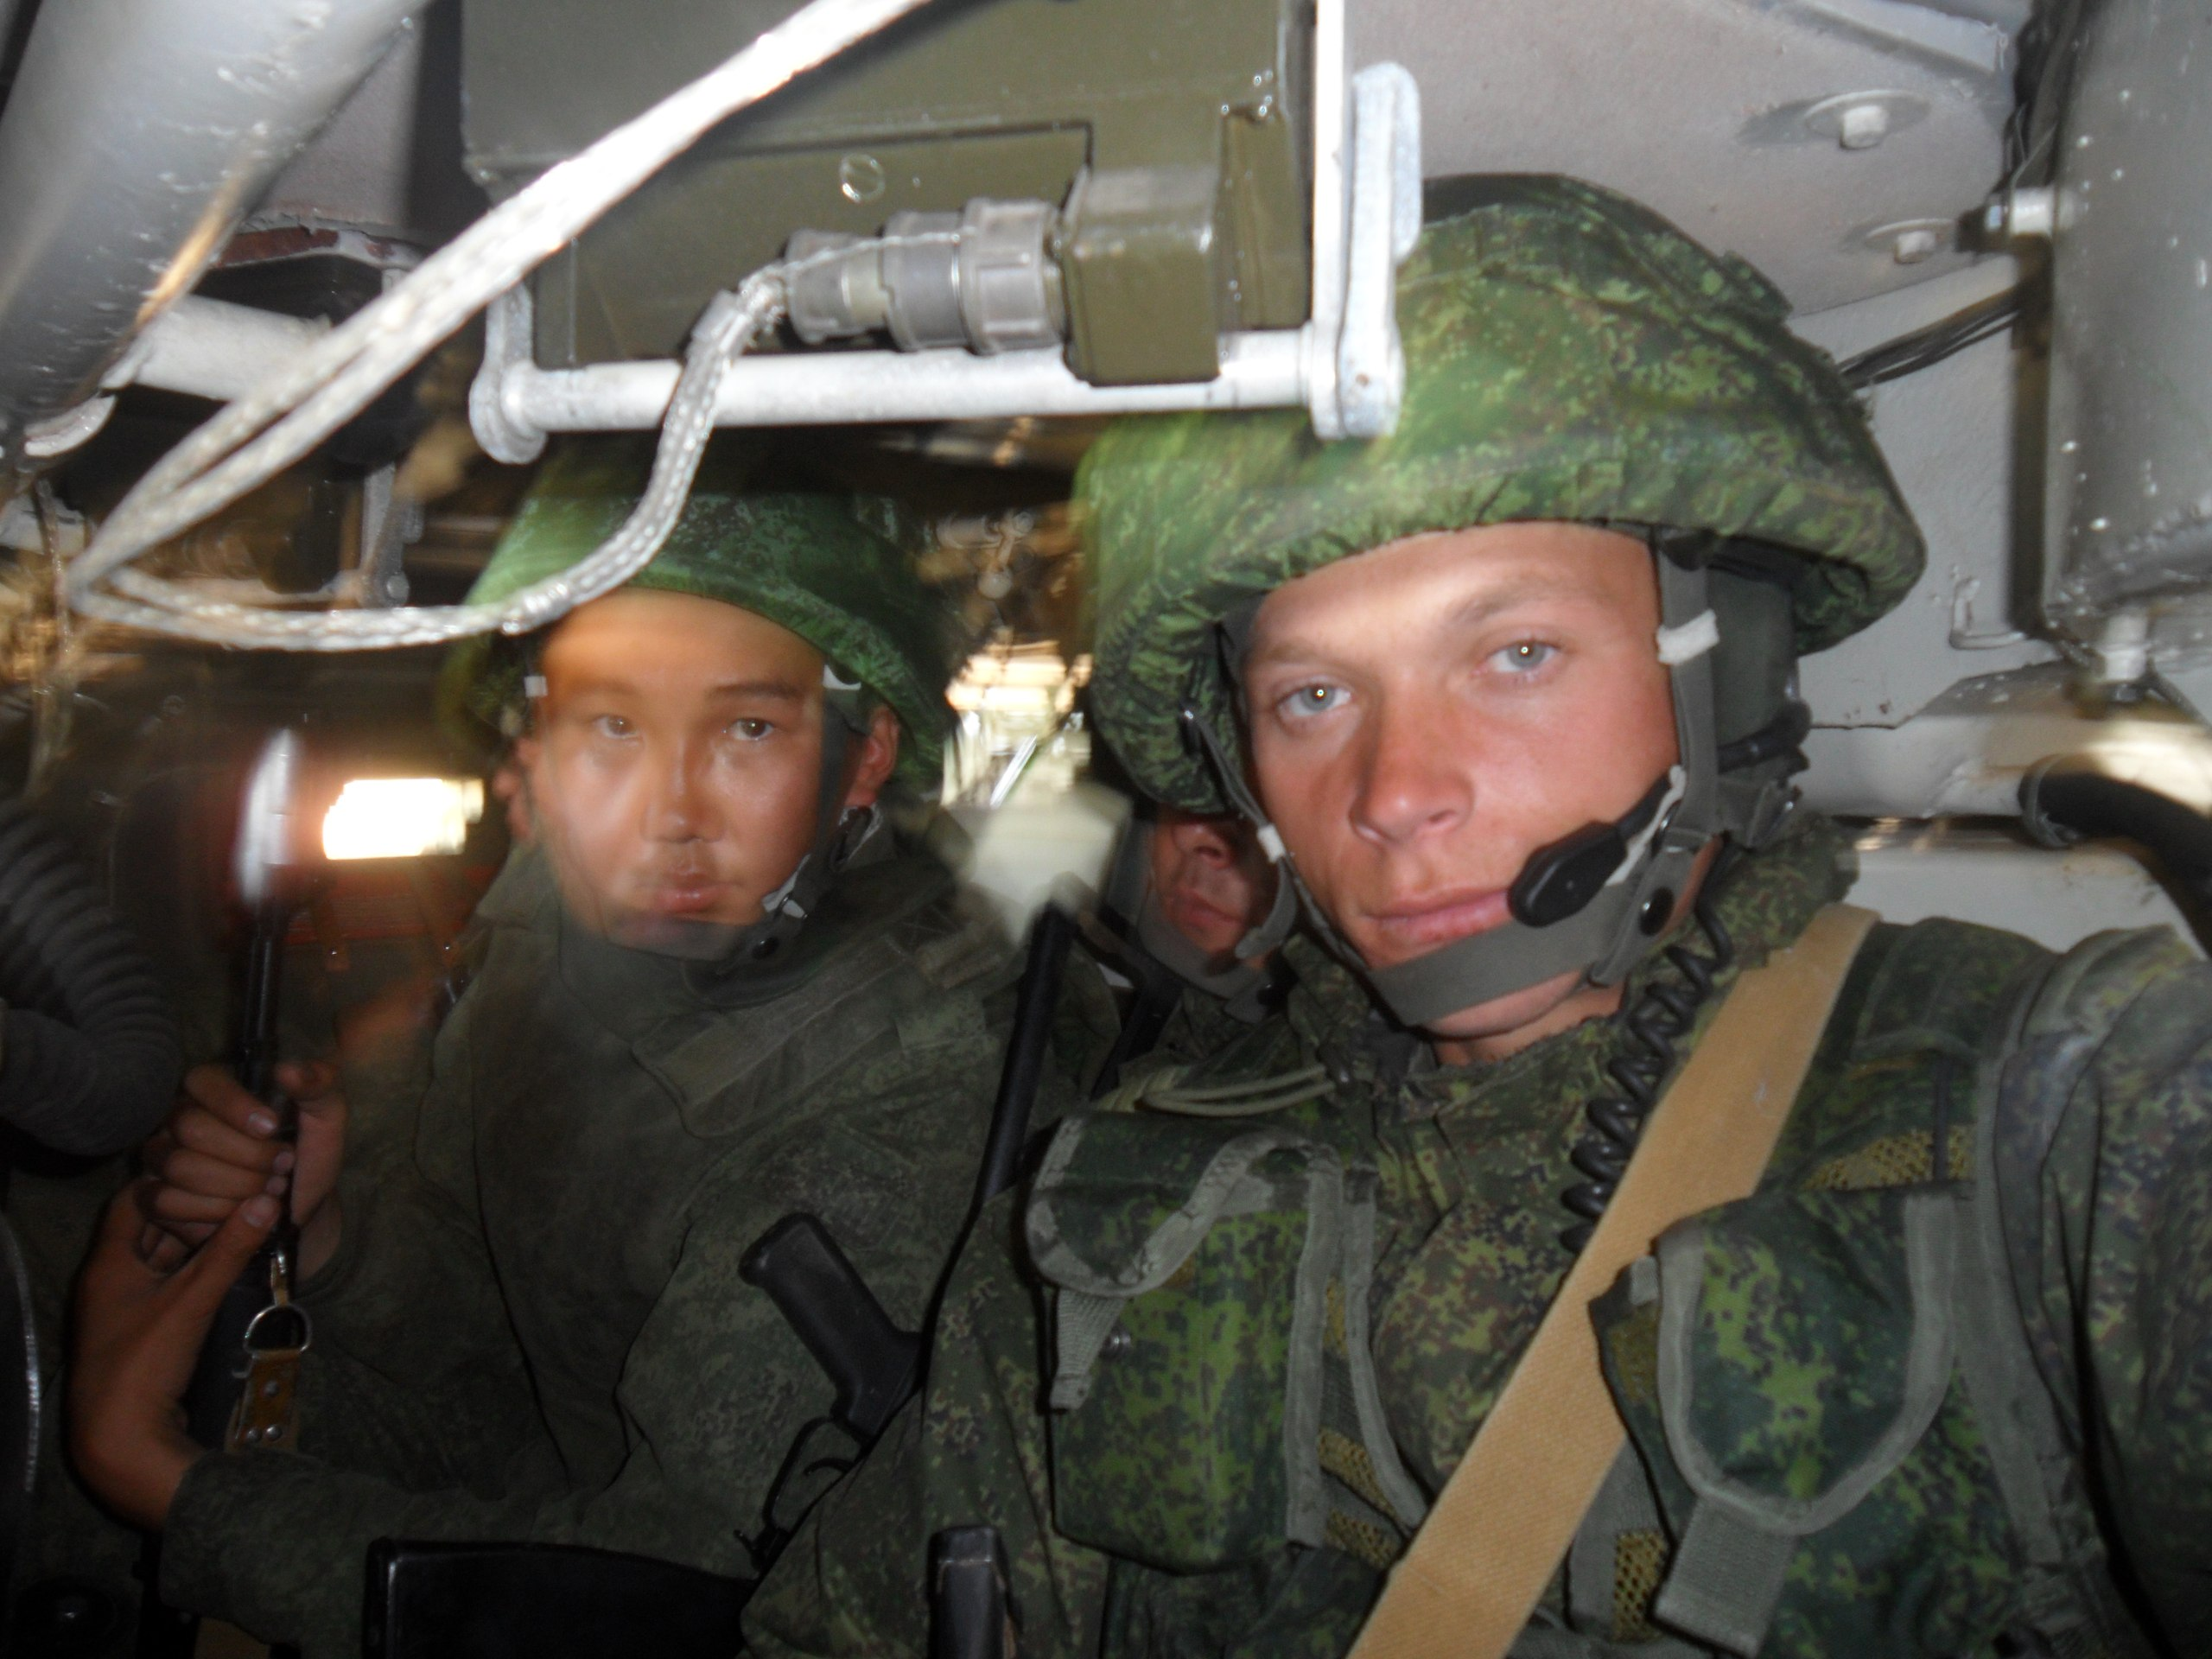 Russian Military Photos and Videos #2 - Page 33 IrMs6zqU3MU